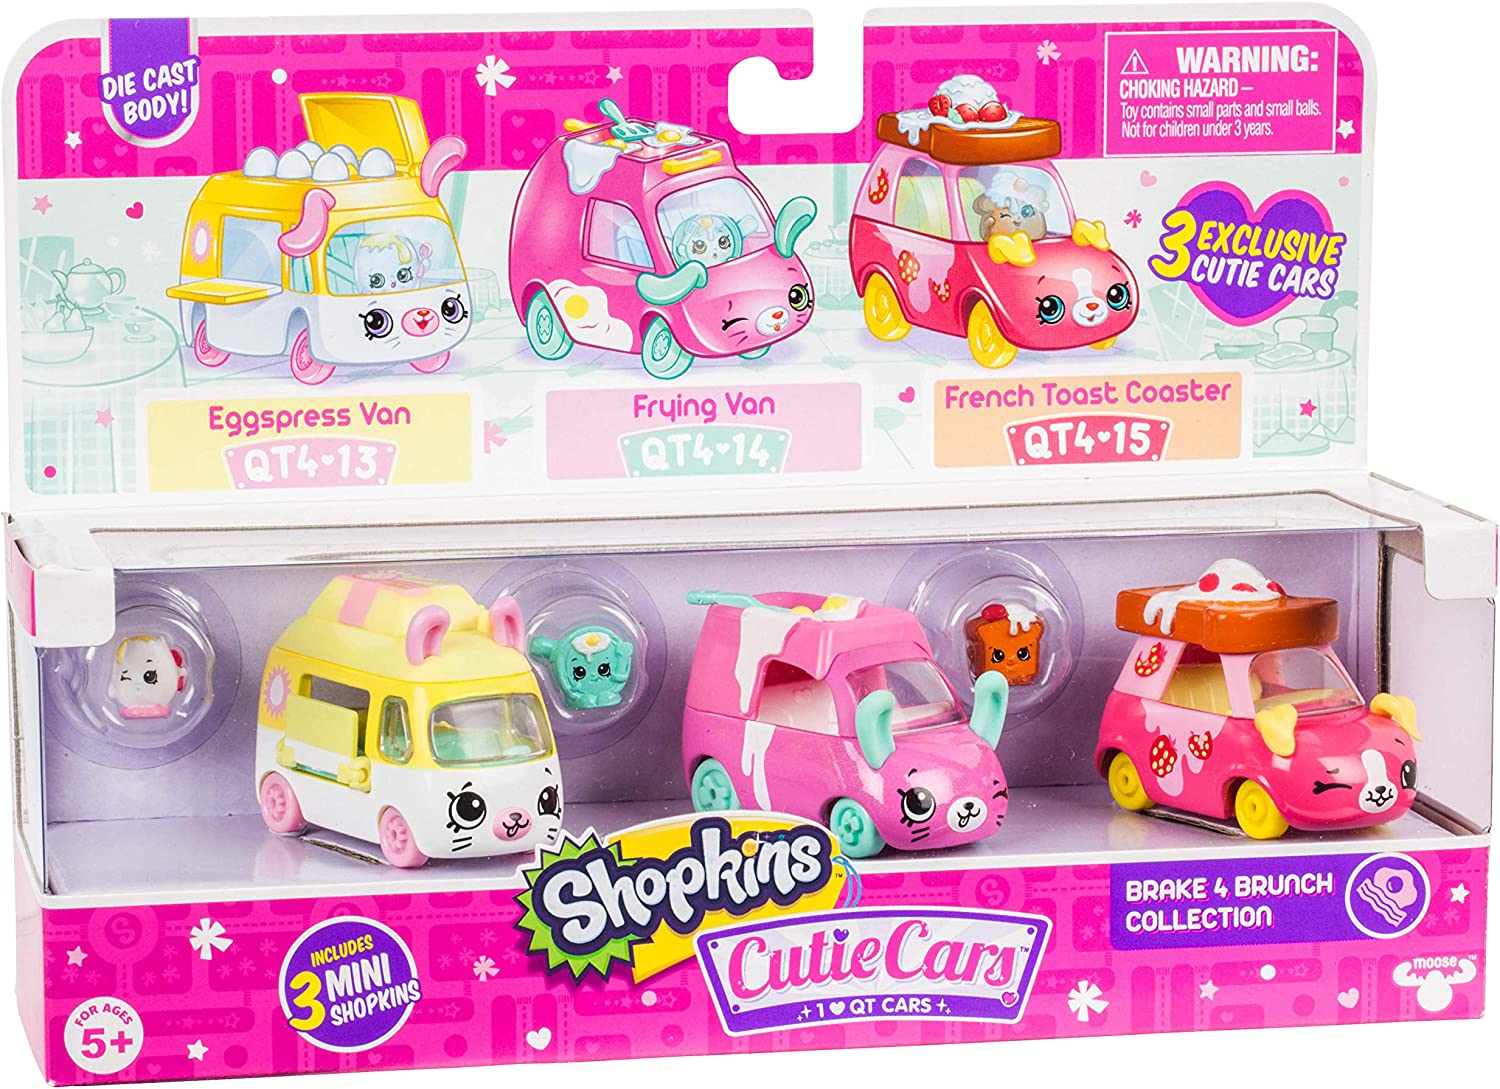 Shopkins Cutie Cars 3 Pack Collections, Die Cast Collectible Cars with Mini Removable Brake for Brunch Collection